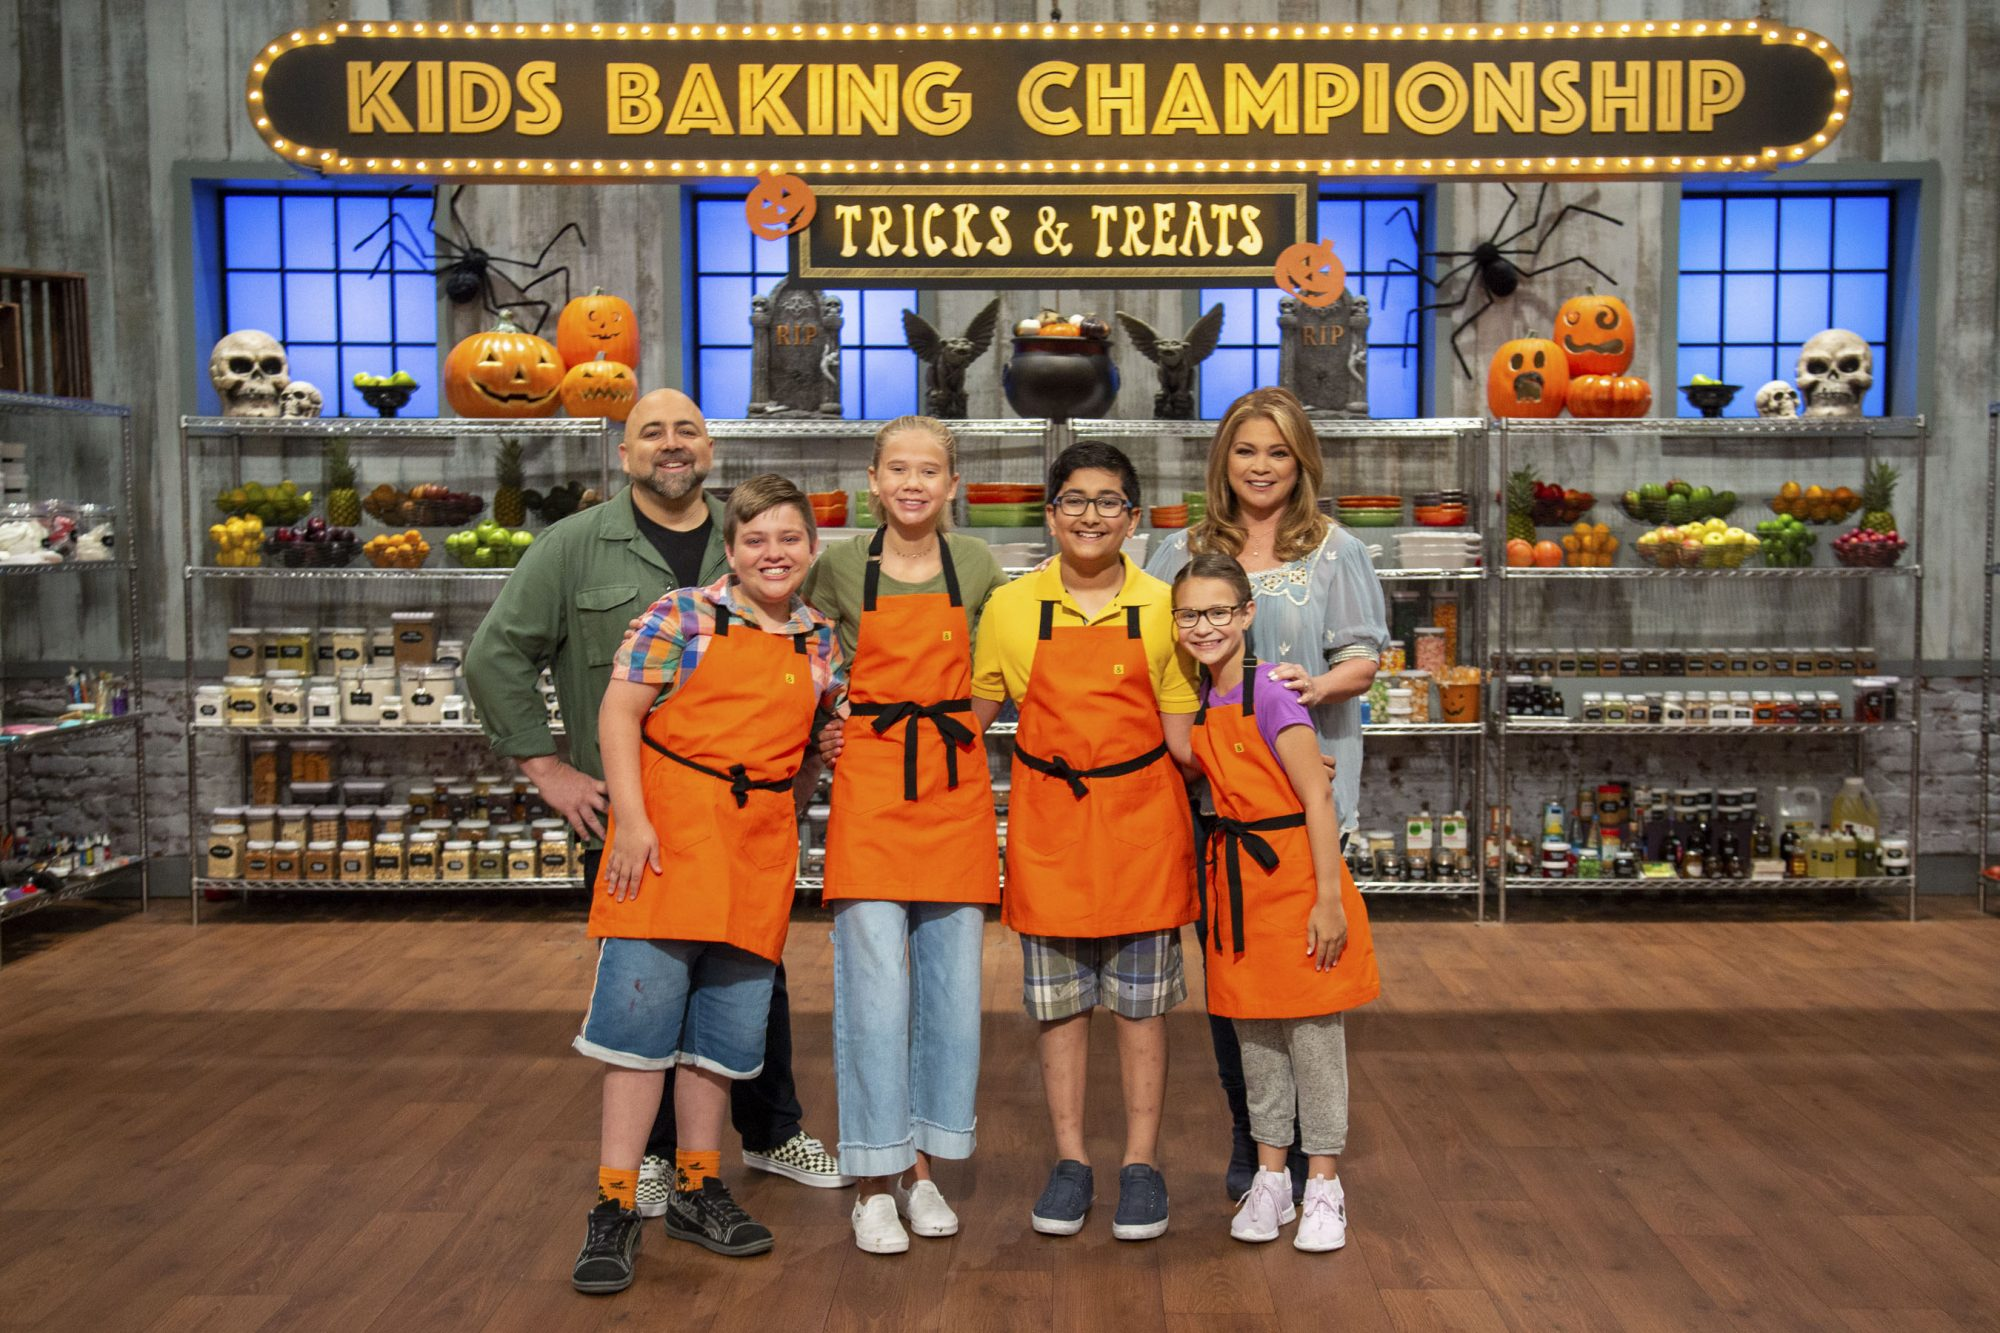 Group shot of Duff Goldman, Valerie Bertinelli and all bakers Davey, Bryn, Karthik, and Madison, as seen on Kids Baking Halloween Special.